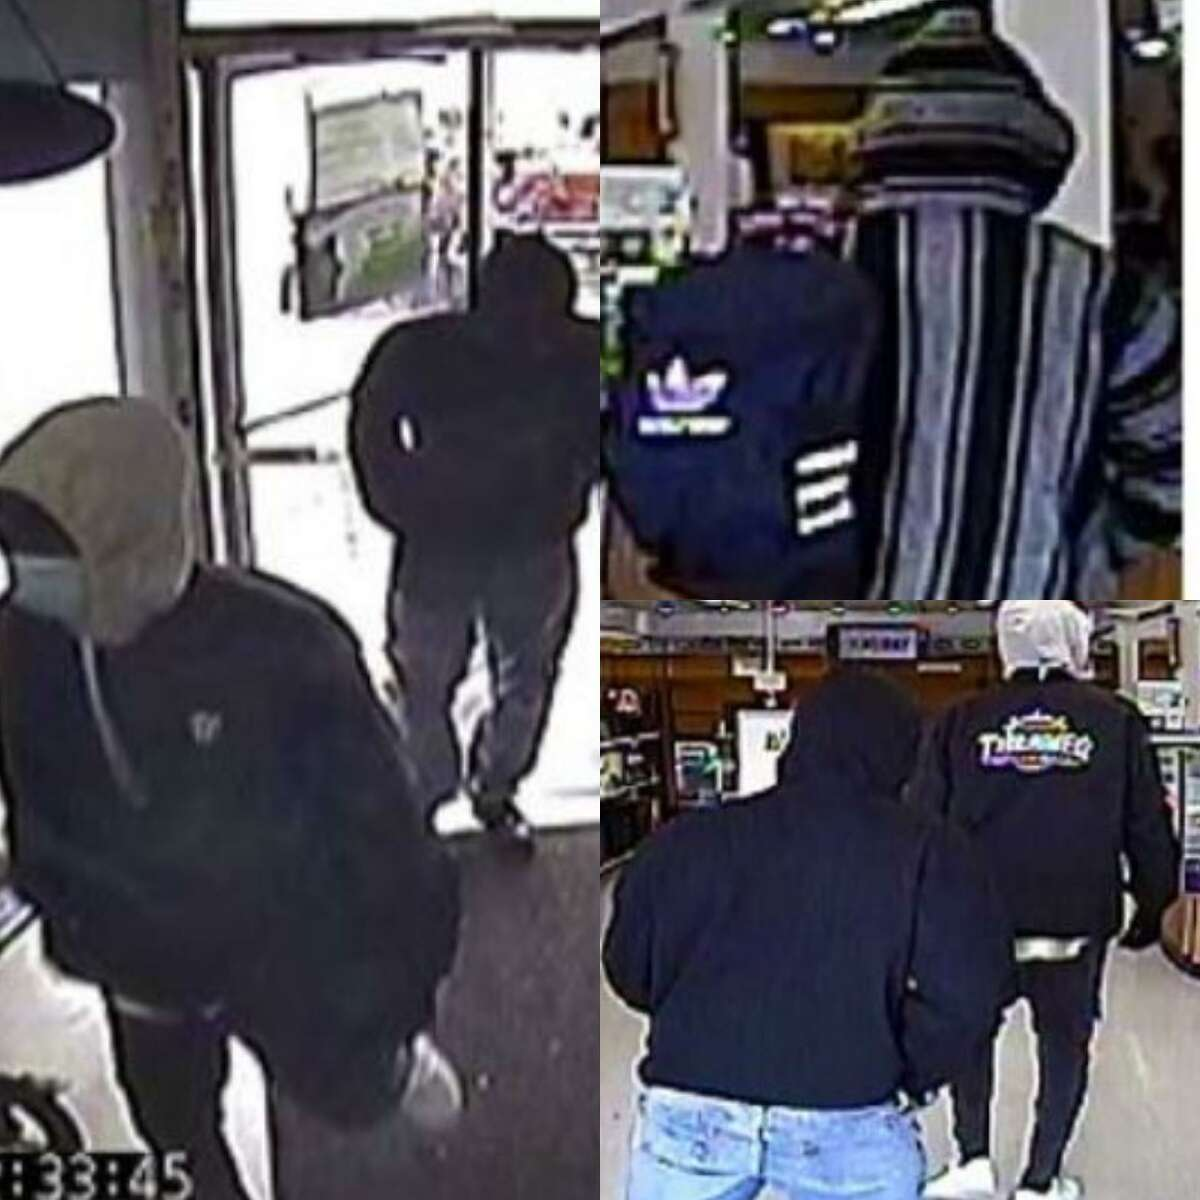 Images from Jan. 26 surveillance video at a pawn shop on Rayford Road in Spring show suspects in an armed robbery.